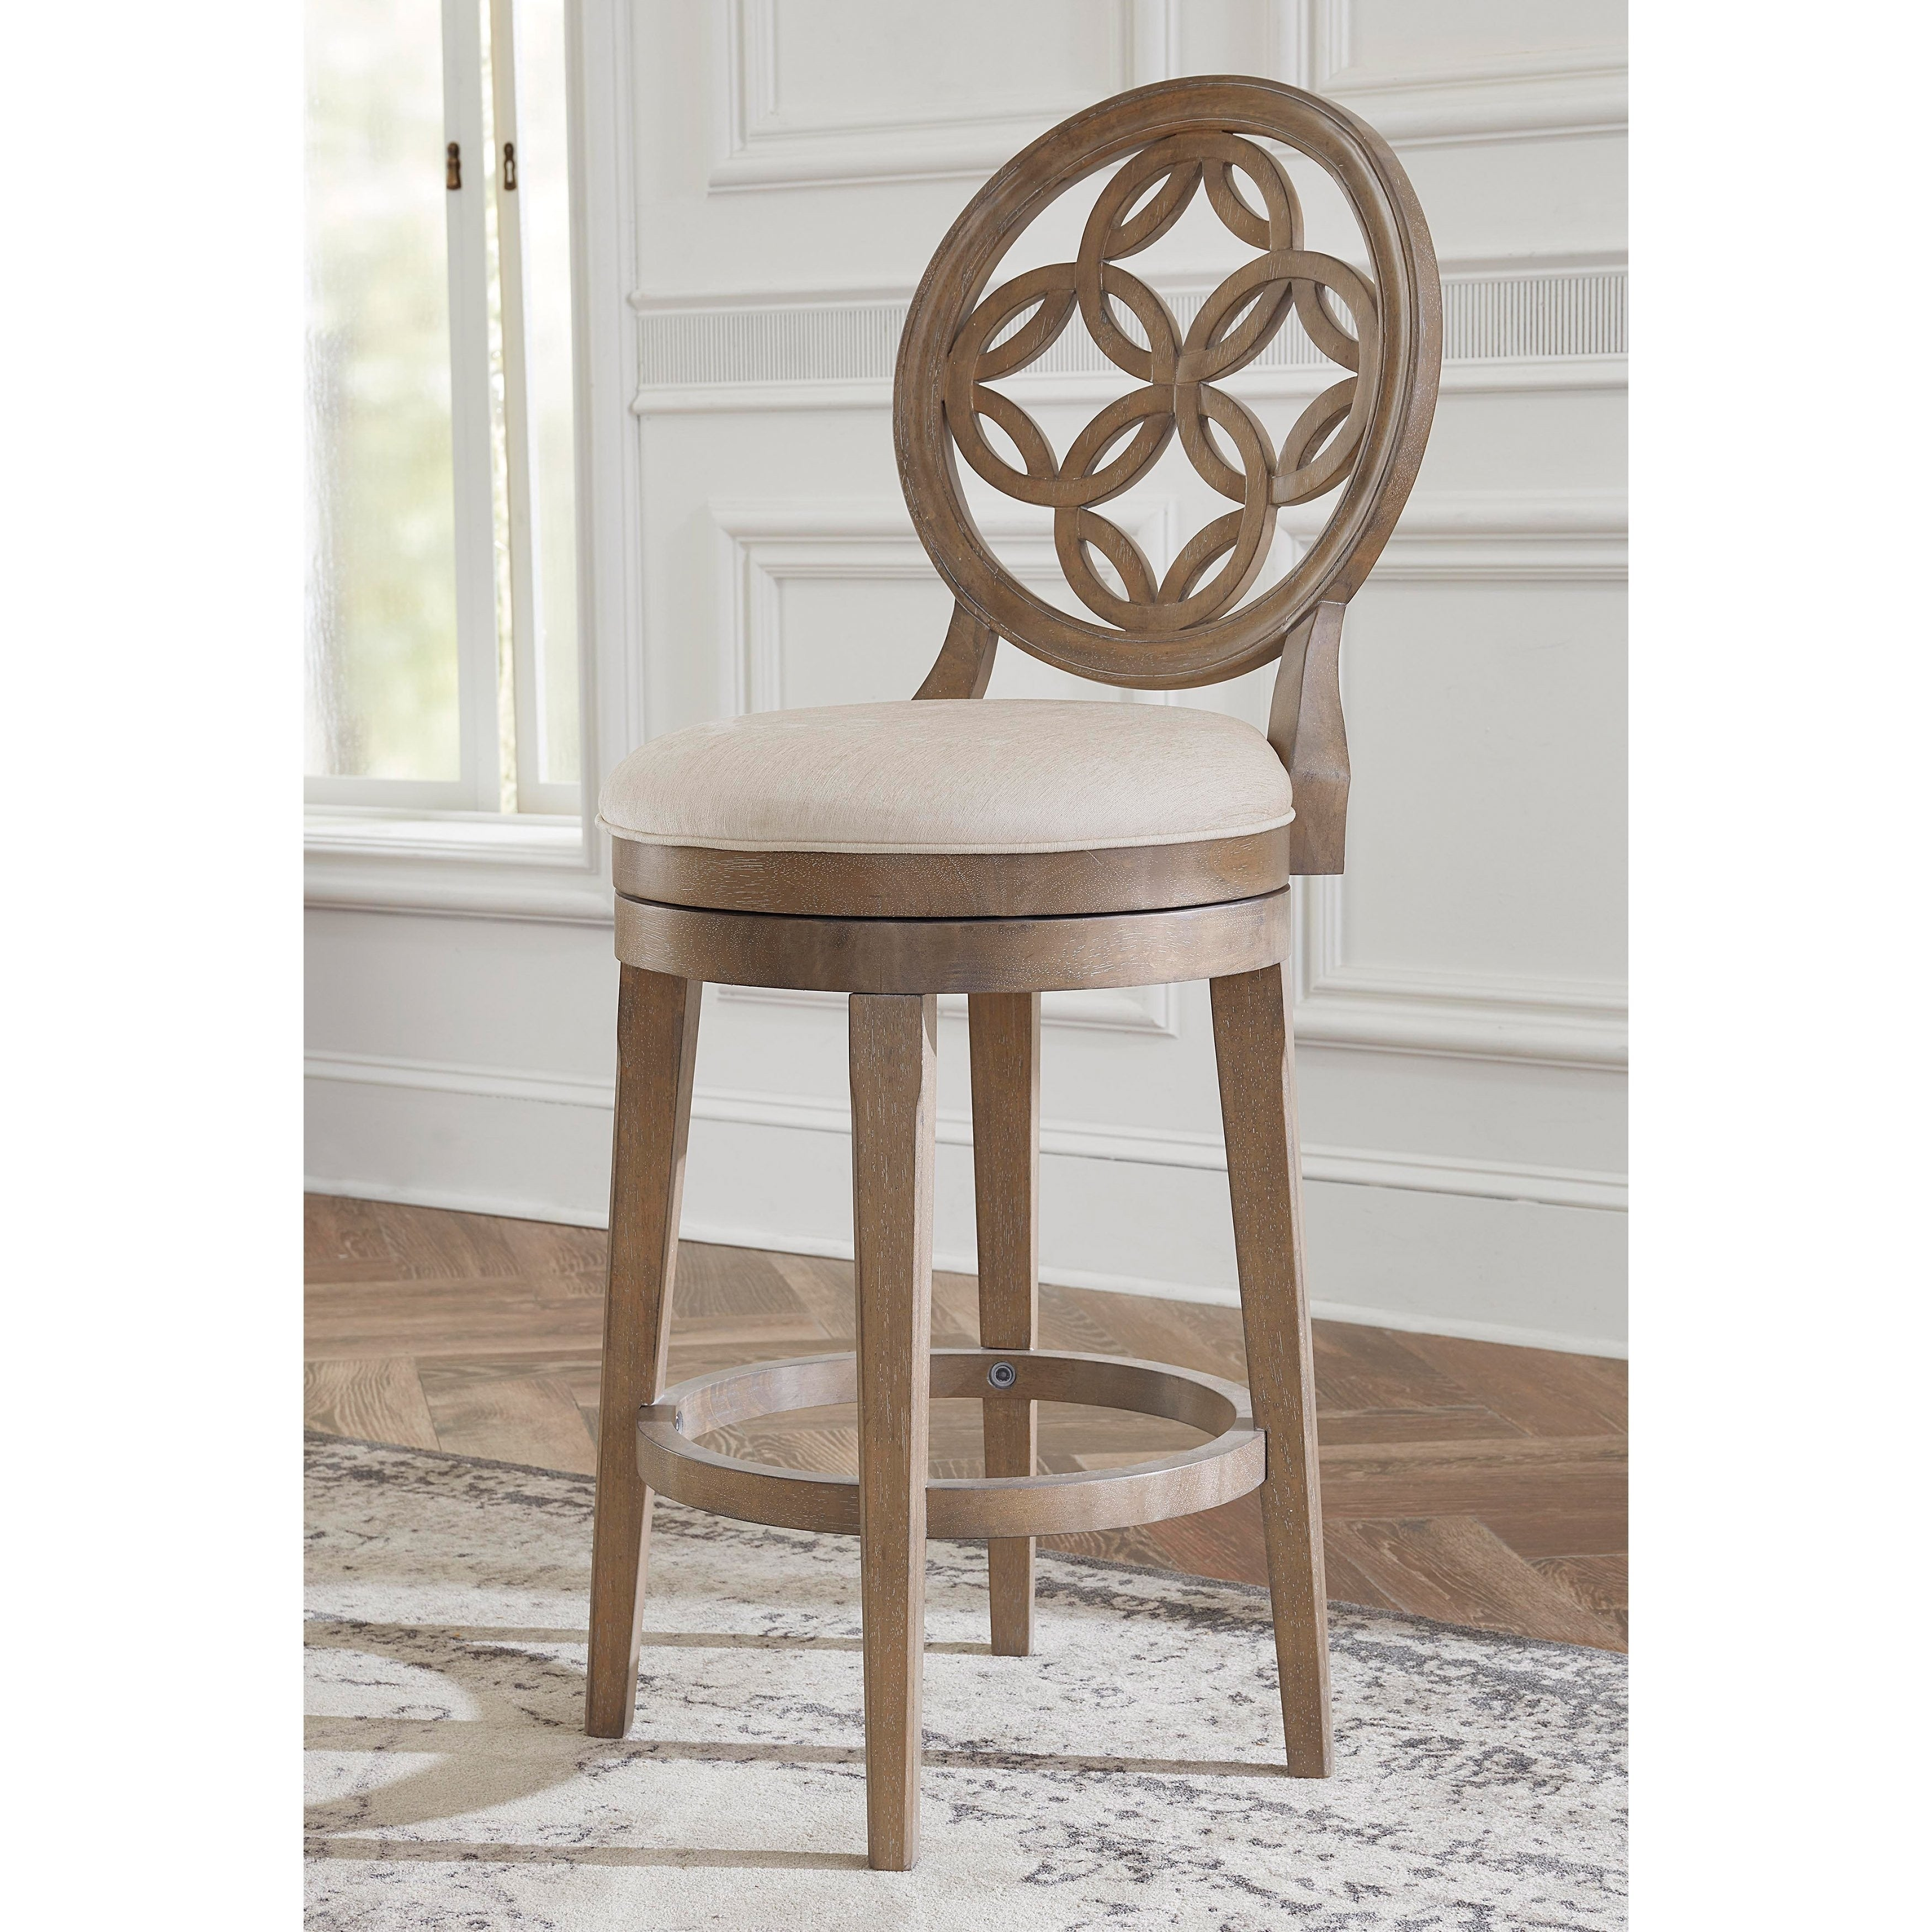 Fine Copper Grove Carcassonne Vintage Grey Swivel Bar Stool With Oyster Fabric Upholstery Unemploymentrelief Wooden Chair Designs For Living Room Unemploymentrelieforg